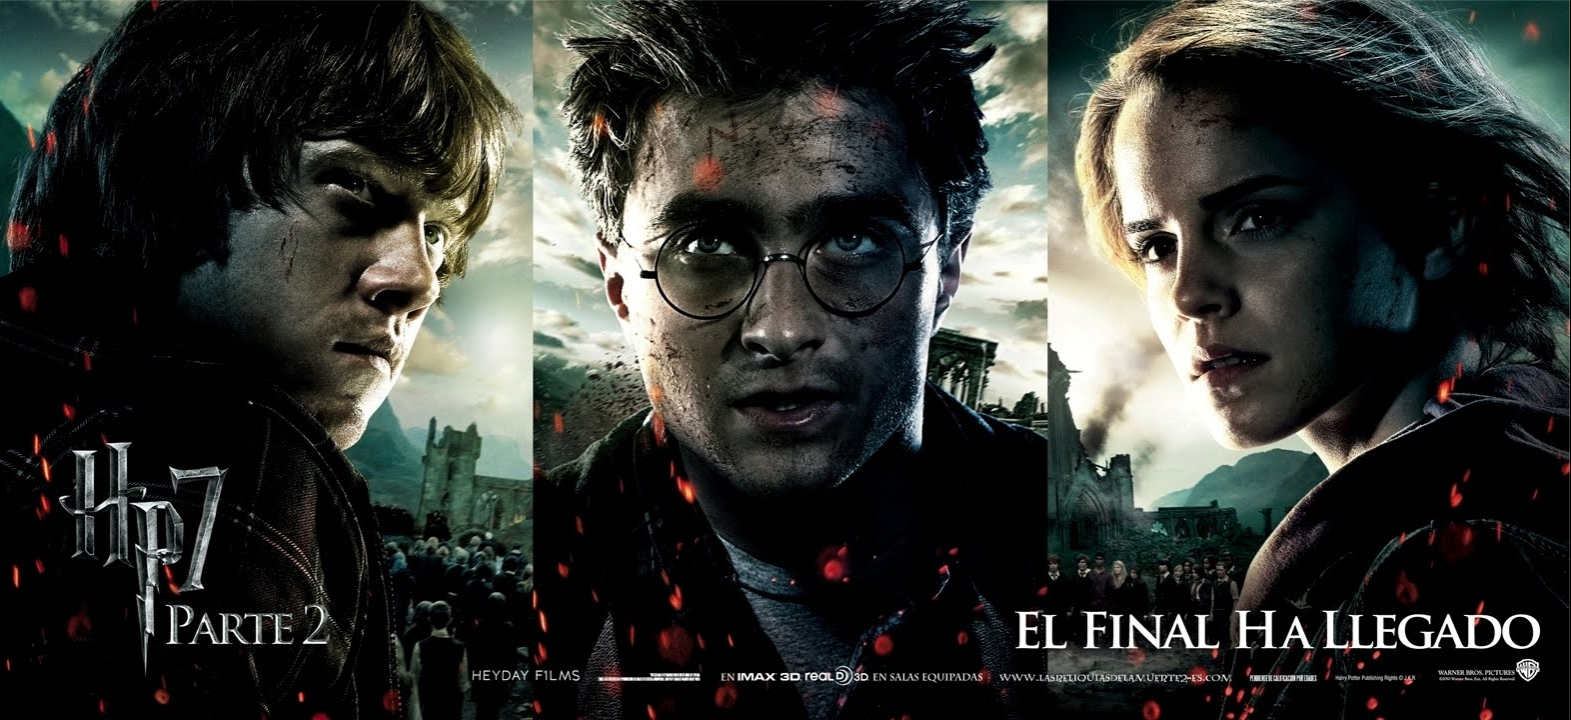 Harry Potter & the Deathly Hallows – Part 2